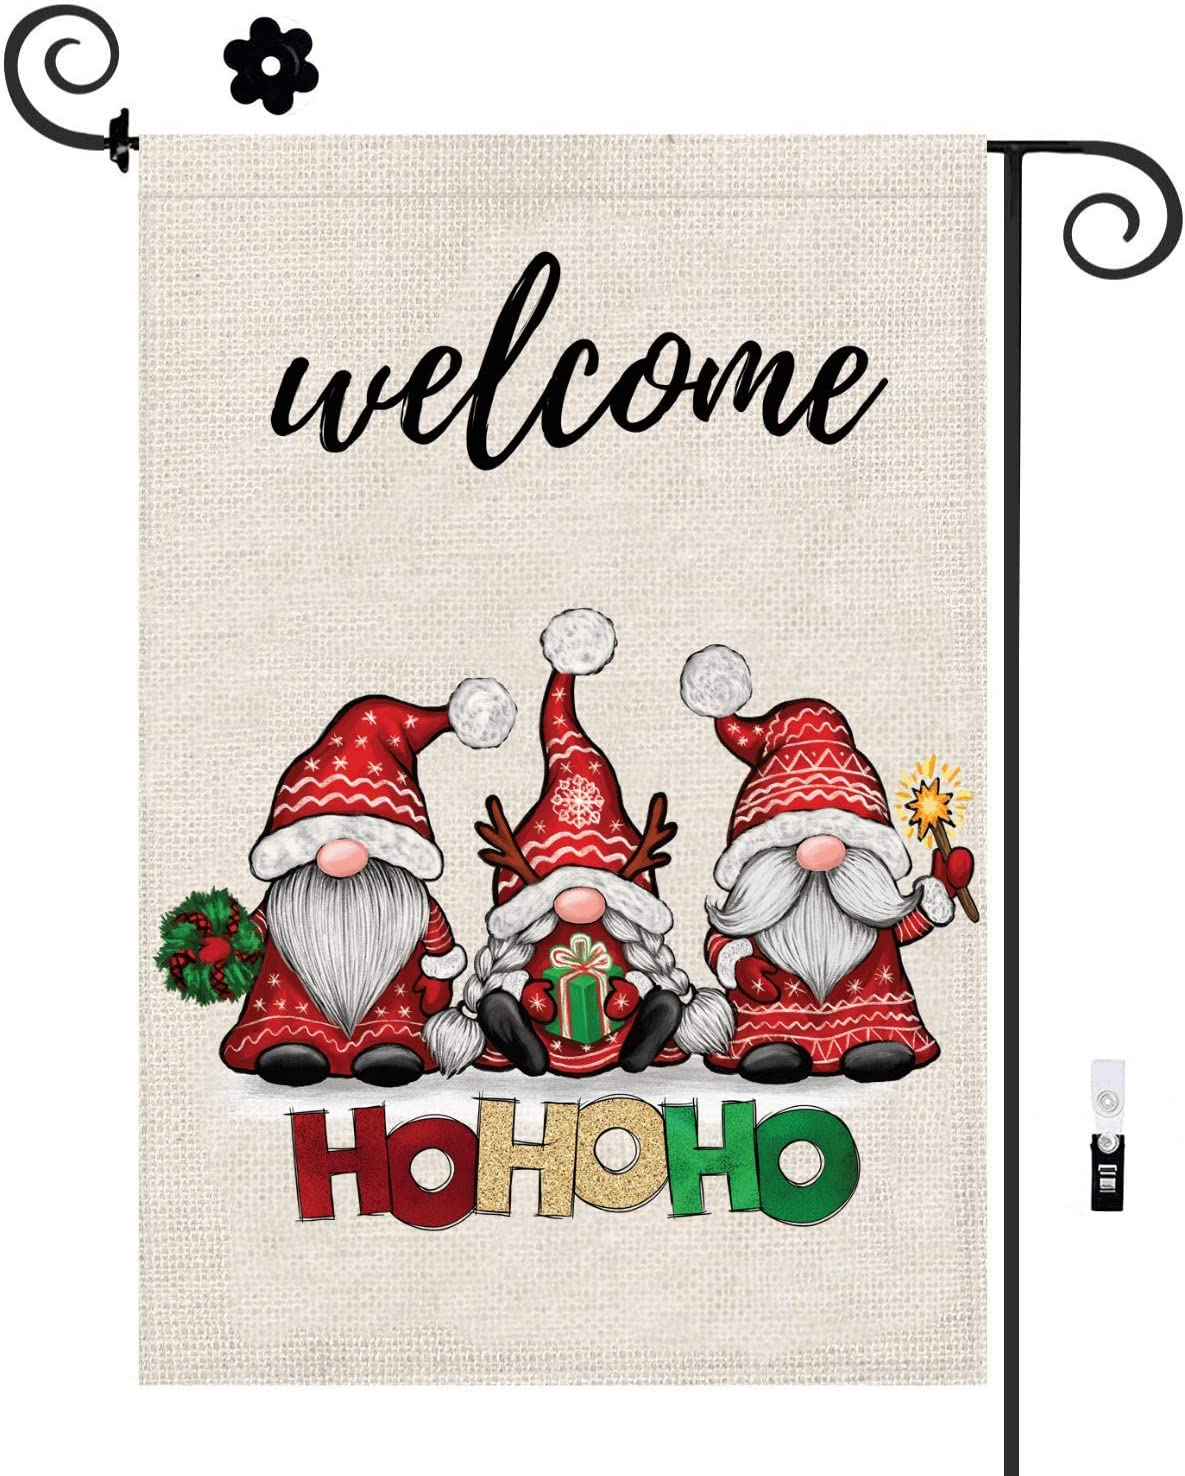 Gnome Garden Flag with Flag Stopper & Clip, Christmas Garden Flag 12x18 Double Sided, Welcome Yard Seasonal Flags for Thanksgiving Fall Winter Outside Holiday with HOHOHO Santa, Outdoor & House Decor